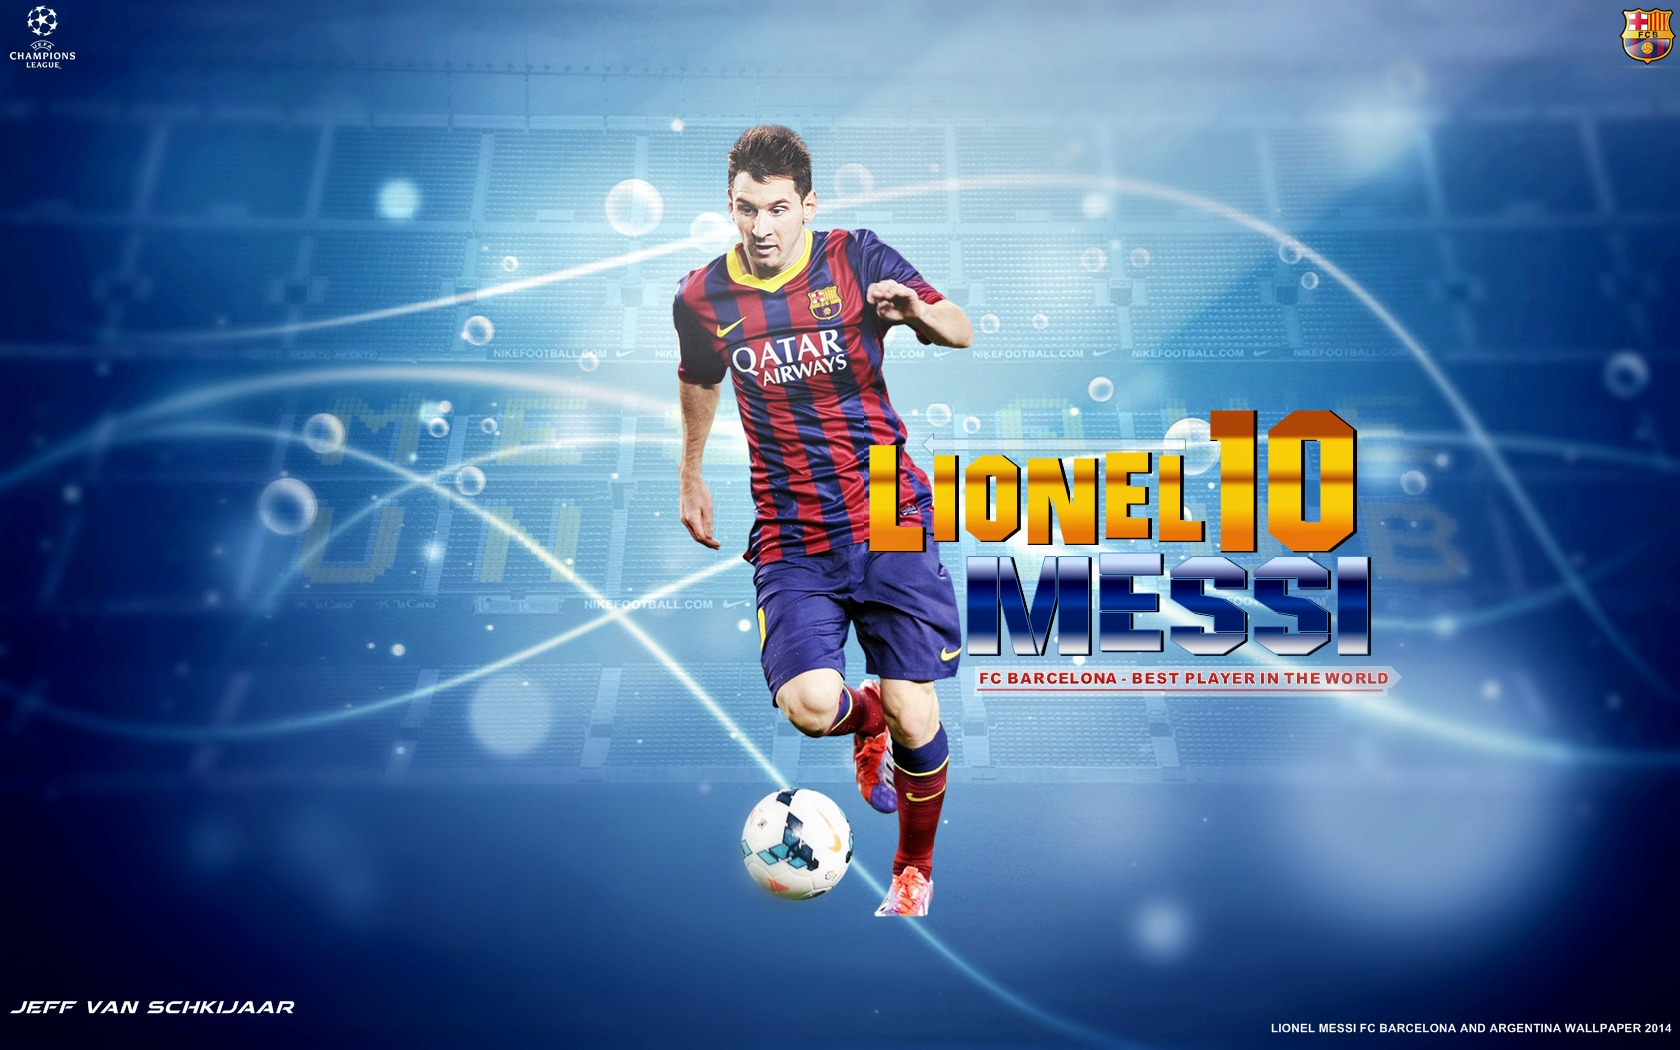 Lionel Messi Full Size Hd